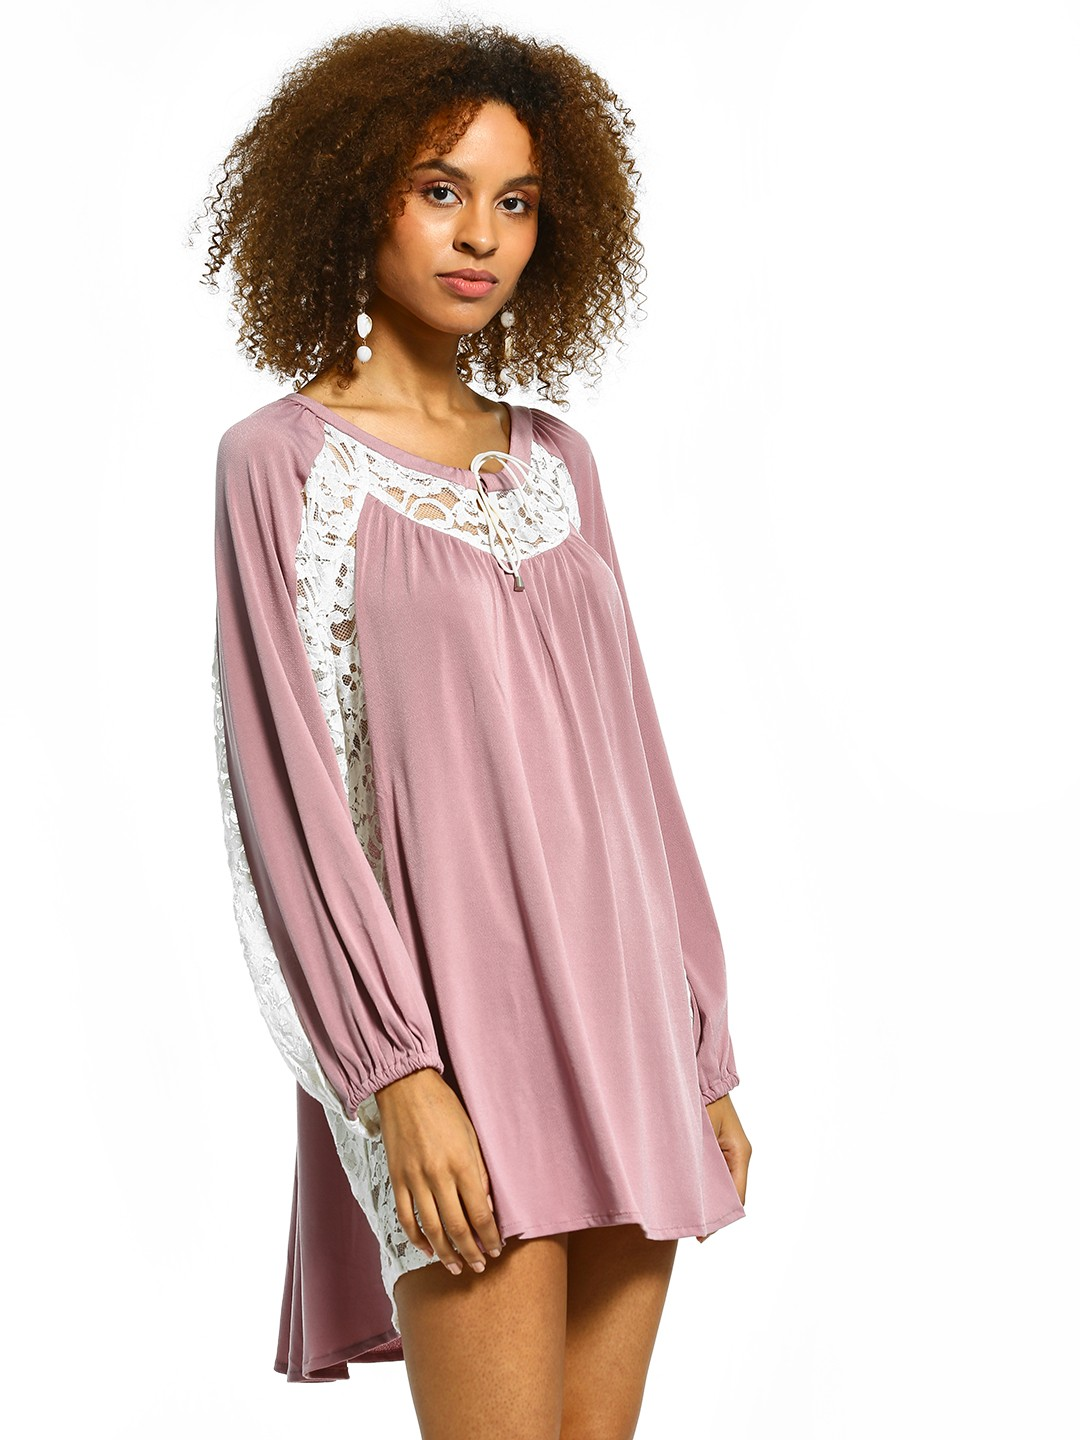 The Paperdoll Company Lilac Lace Insert Shift Dress 1